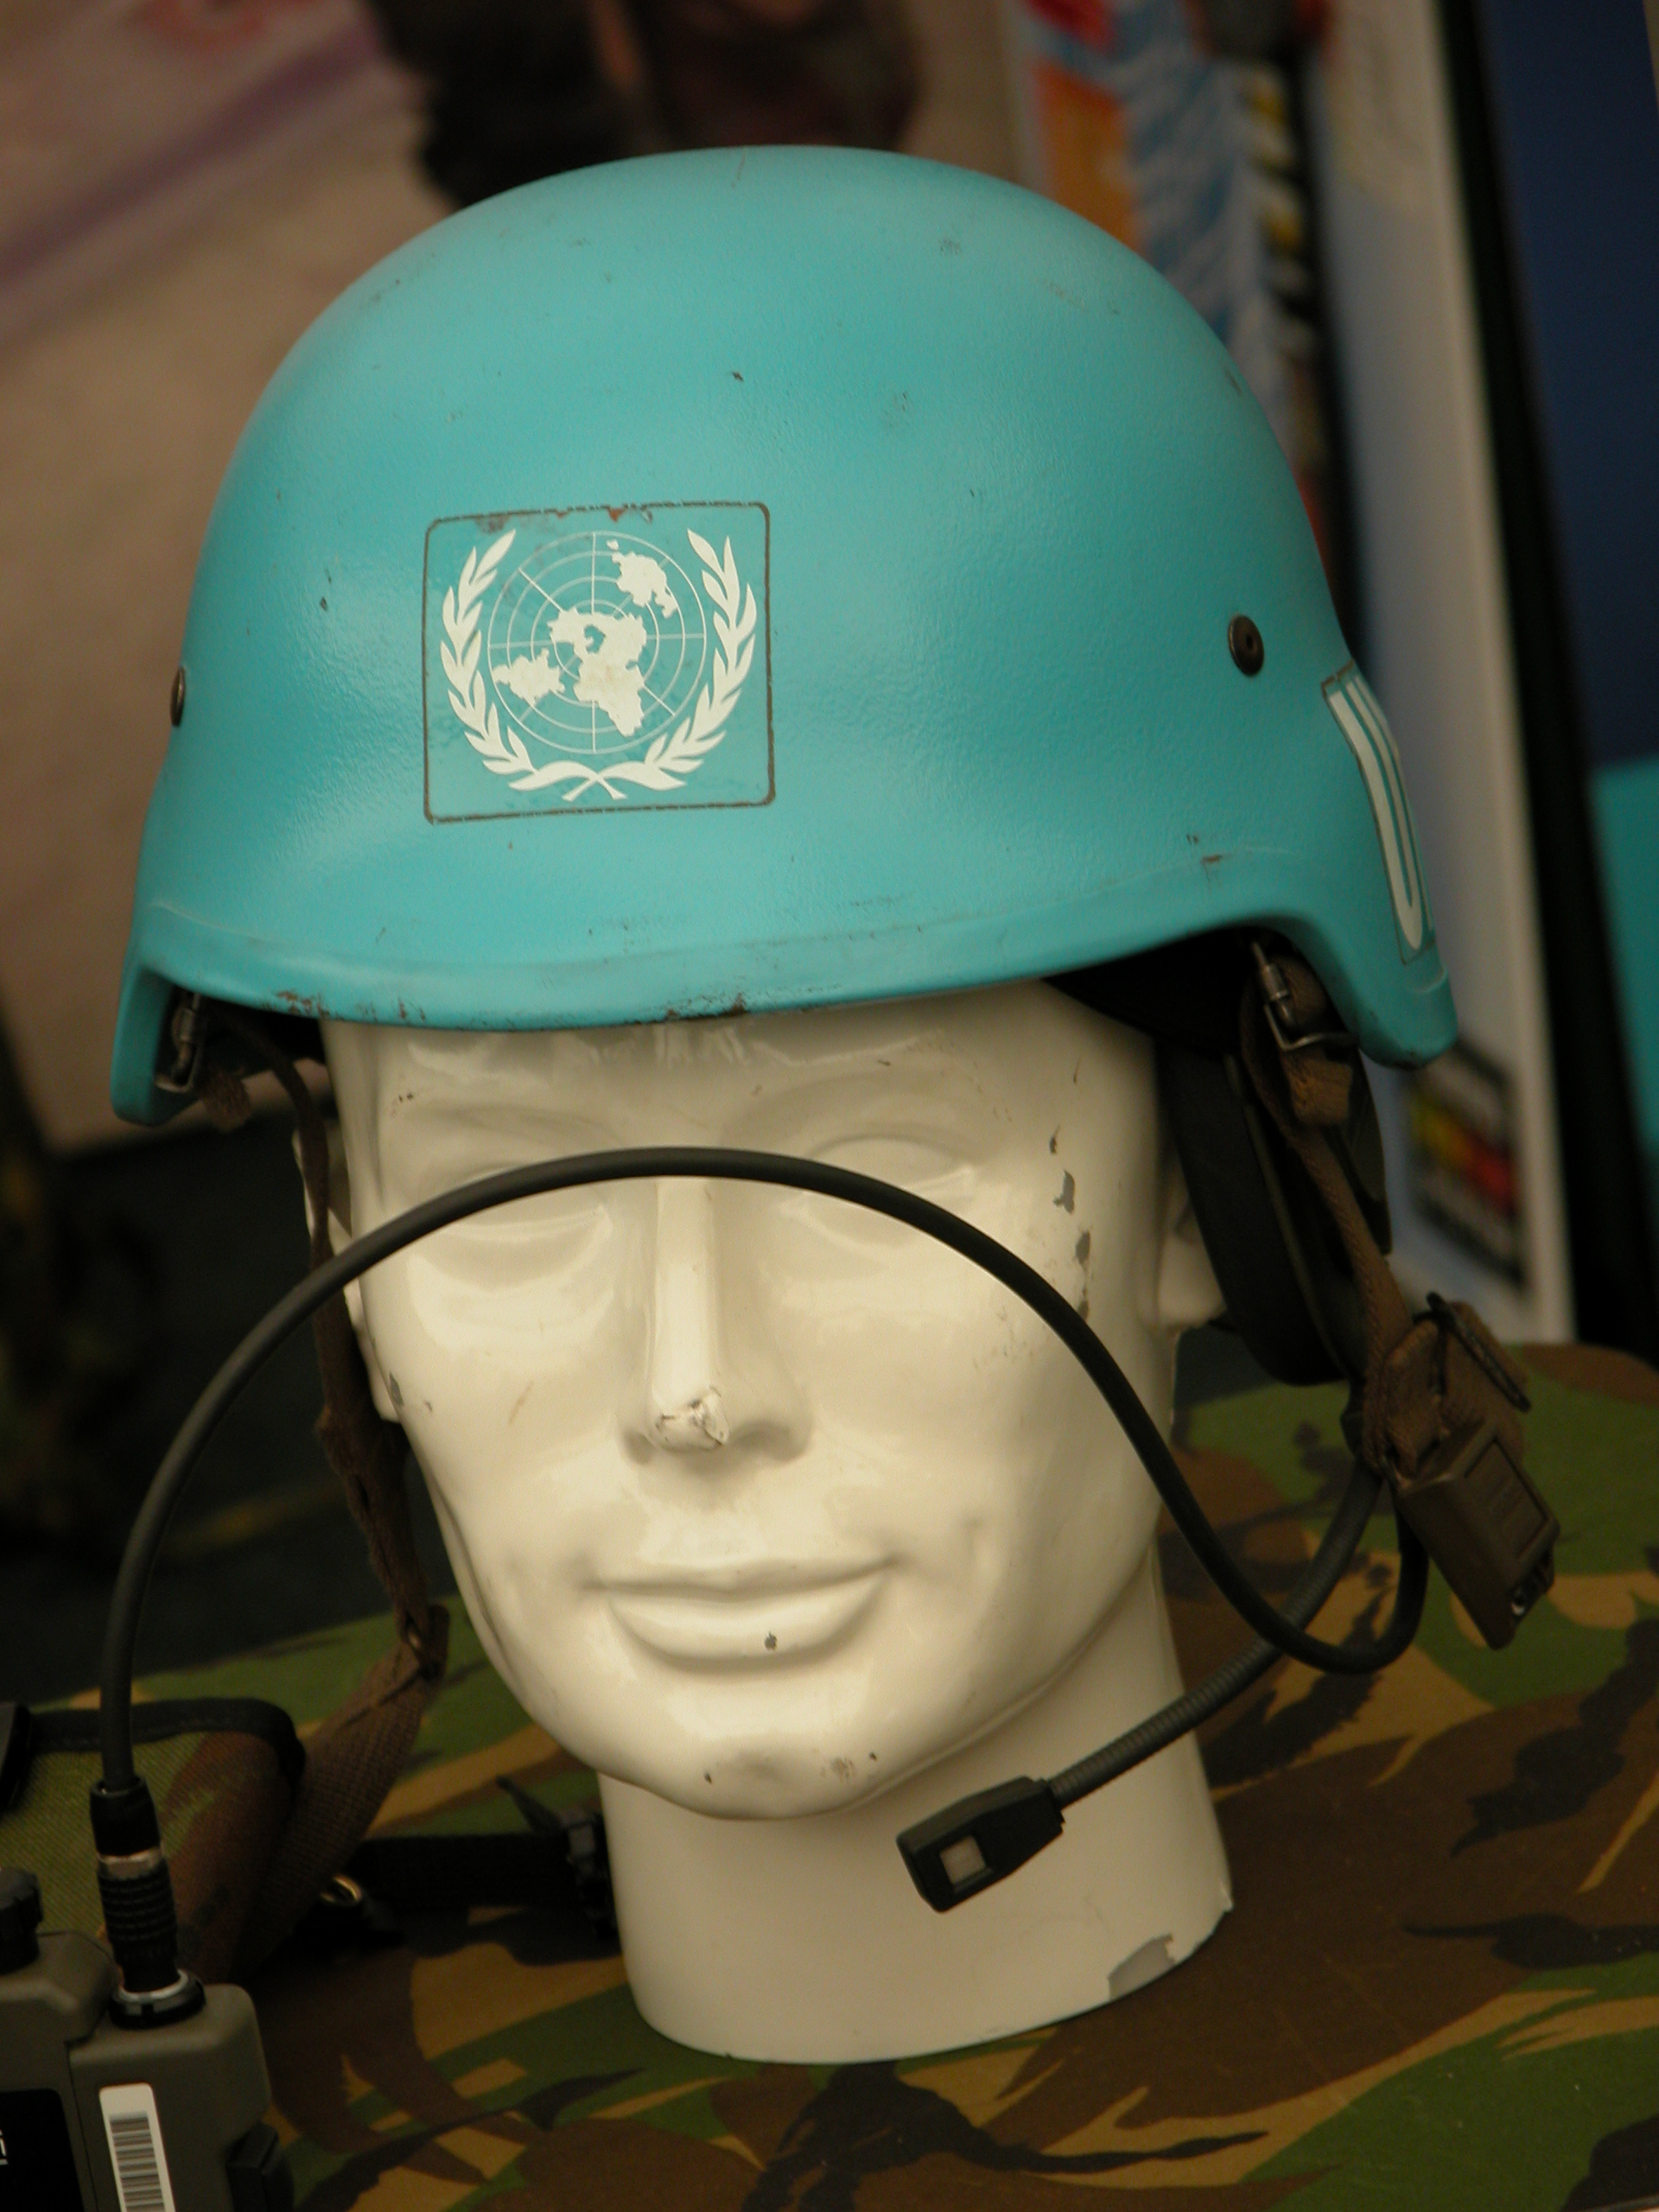 helmet puppet face microphone un map logo bluehelm blue peacekeeper peaceforces peace army